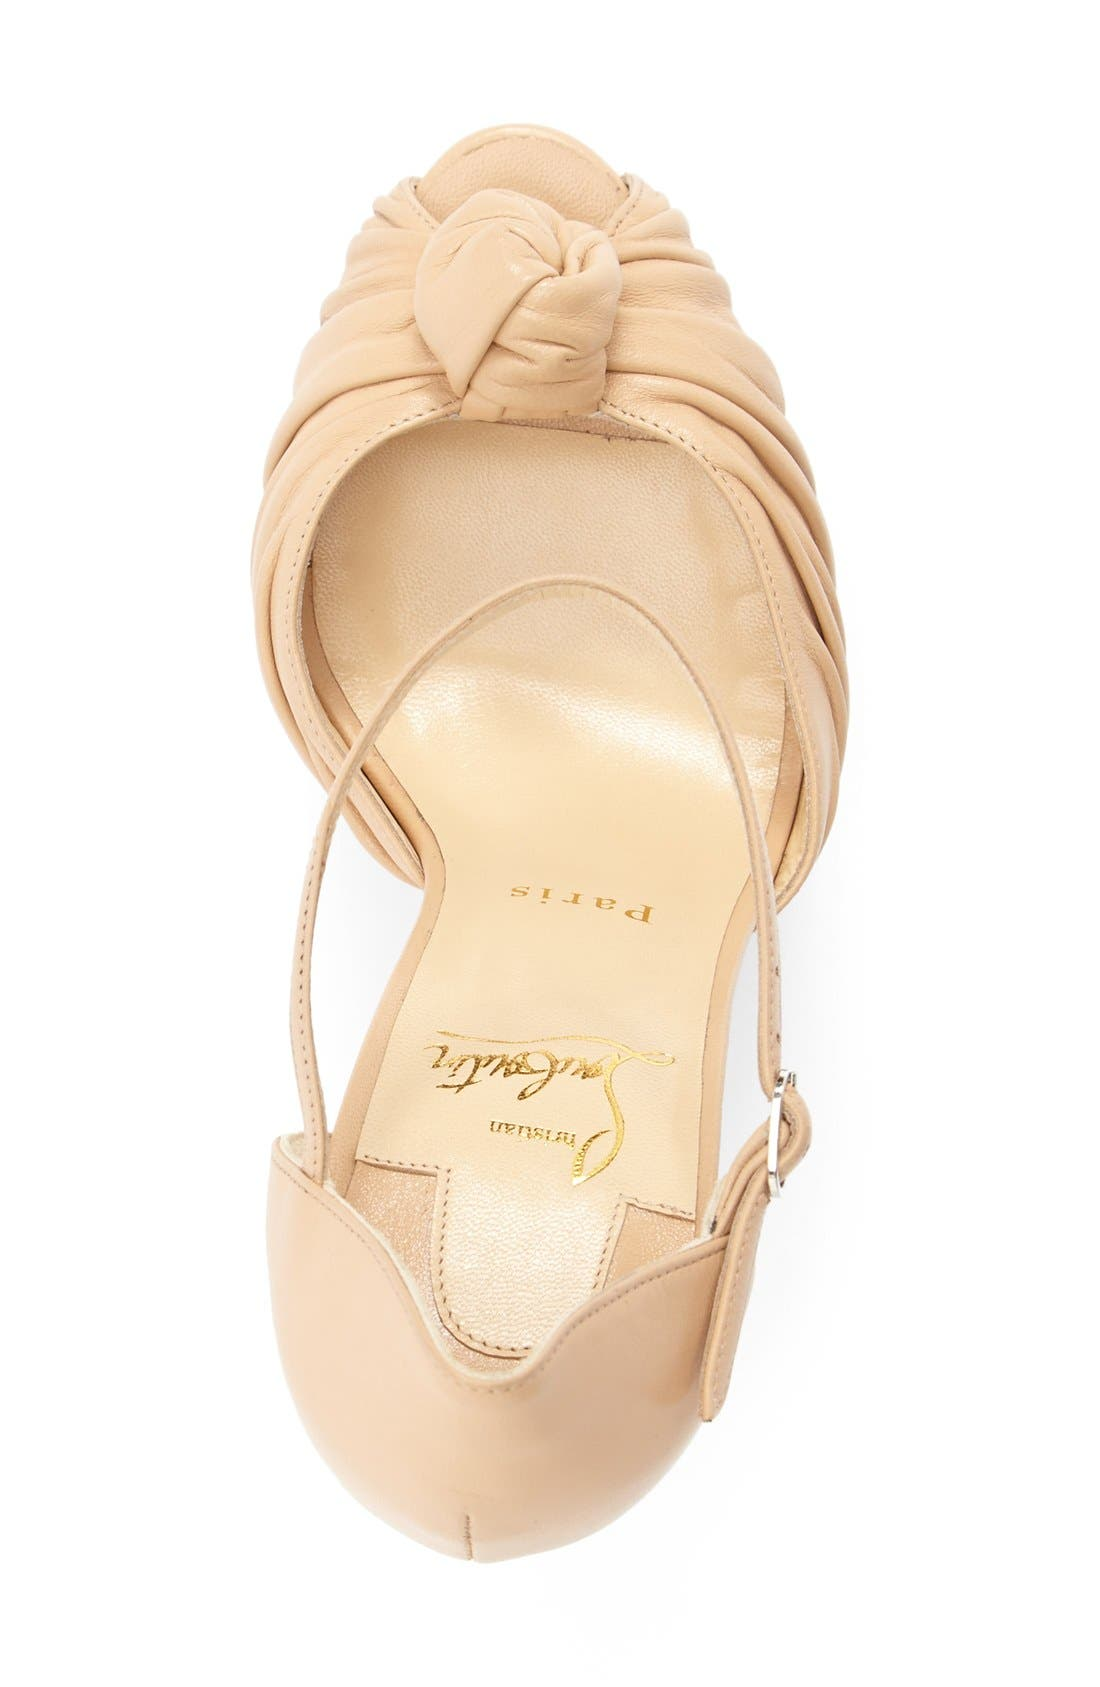 Marchavekel Knot Sandal,                             Alternate thumbnail 3, color,                             Nude Leather